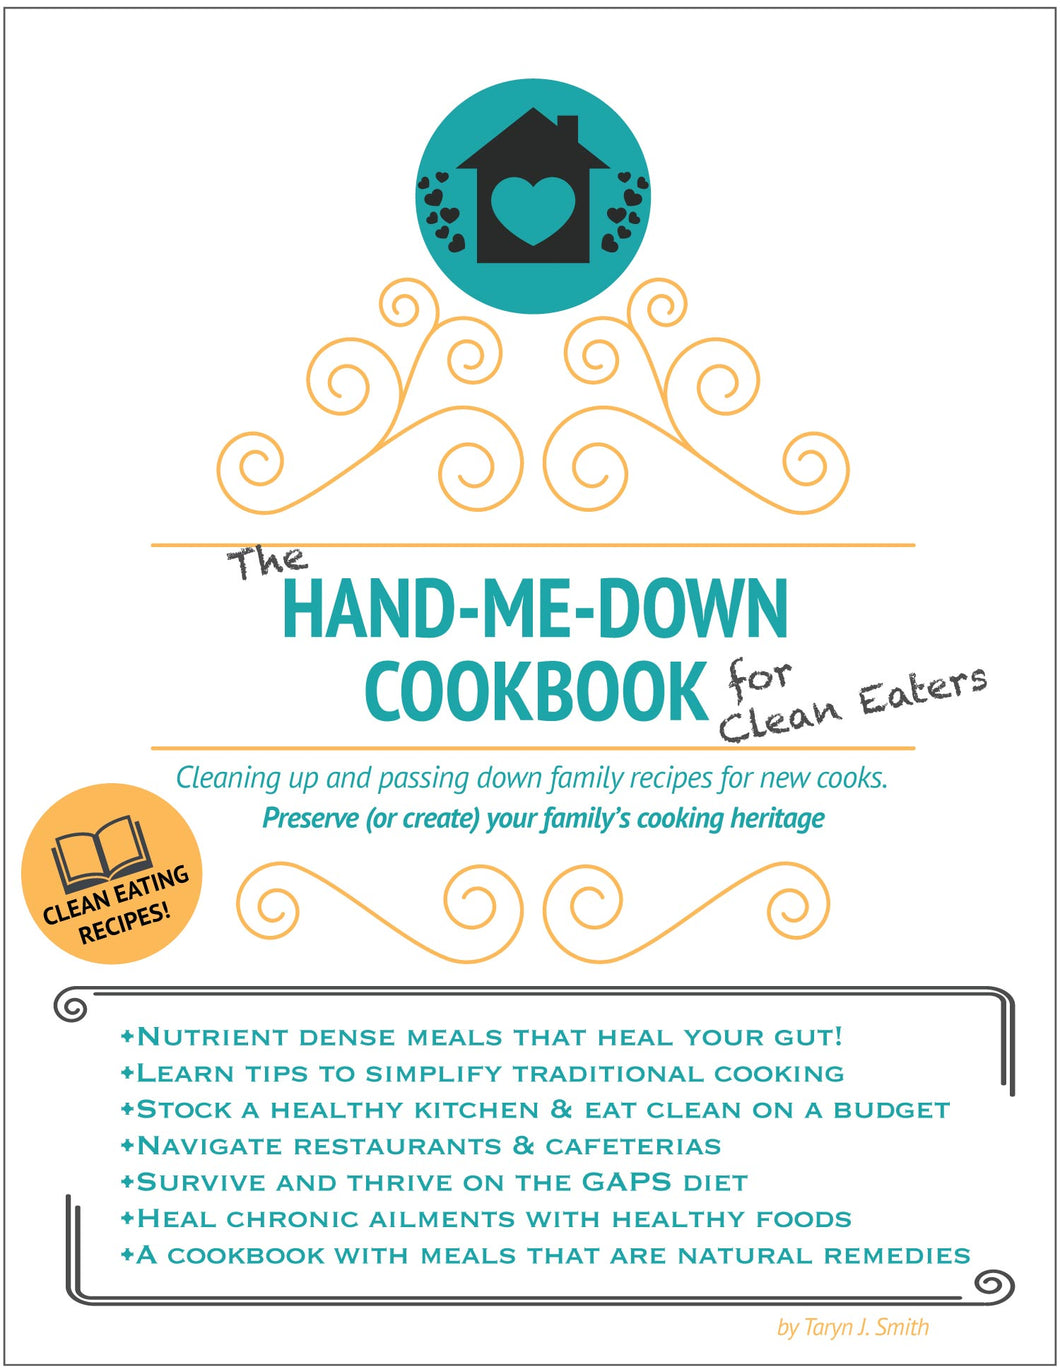 The Hand-Me-Down Cookbook for Clean Eating: Cleaning up & passing down old recipes for new cooks (ebook)